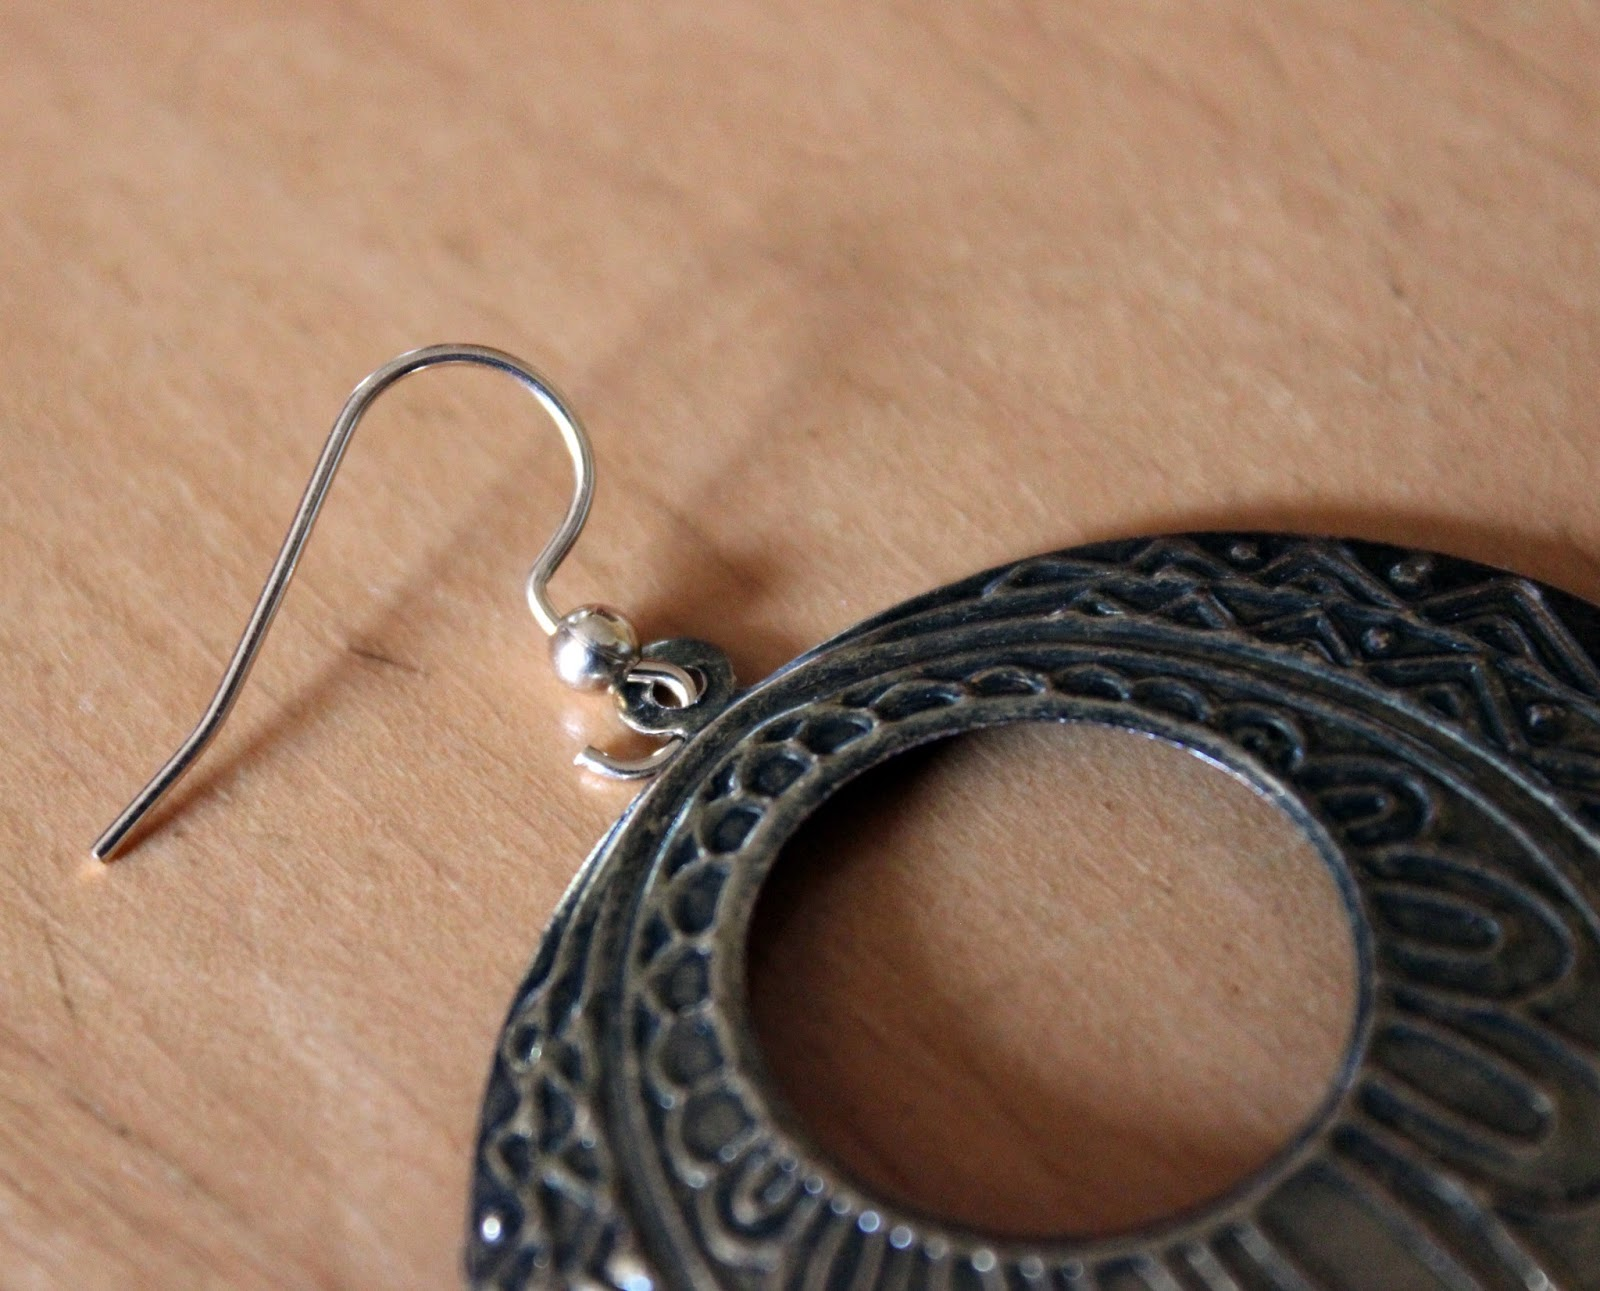 what of earrings for sensitive ears luhivy s favorite things diy earring for sensitive ears 1816